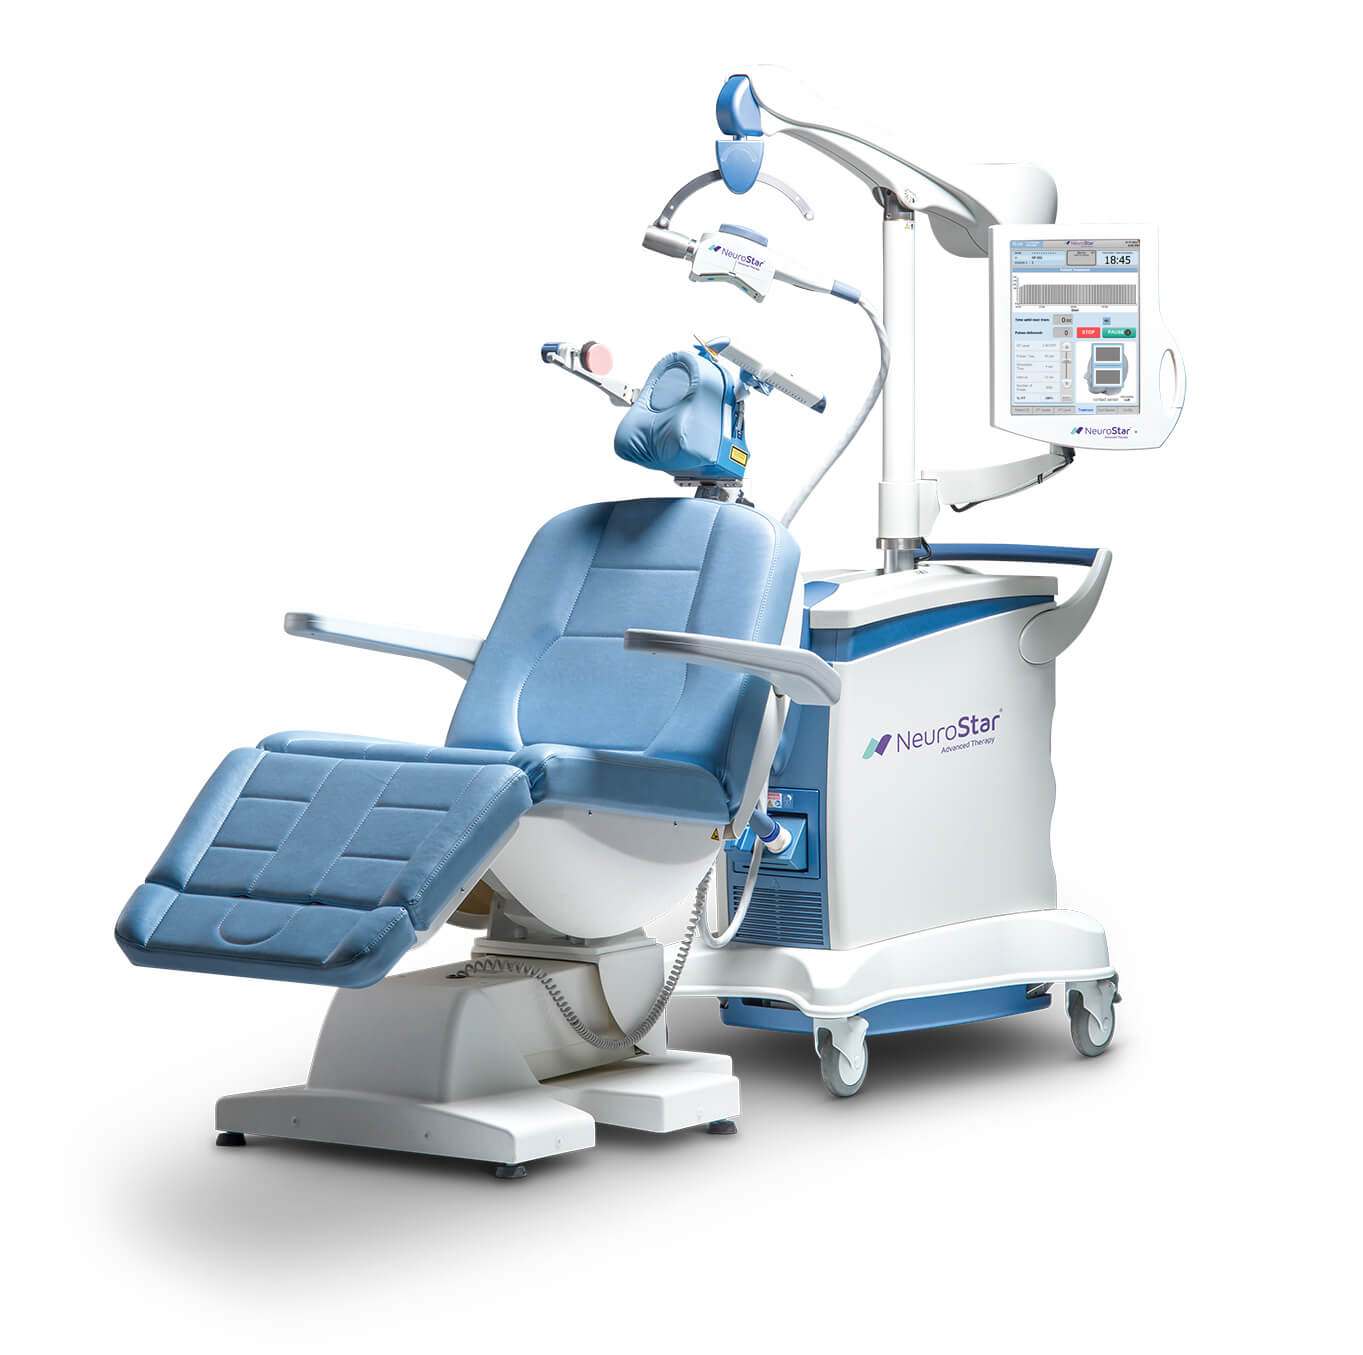 Machine used for TMS treatment